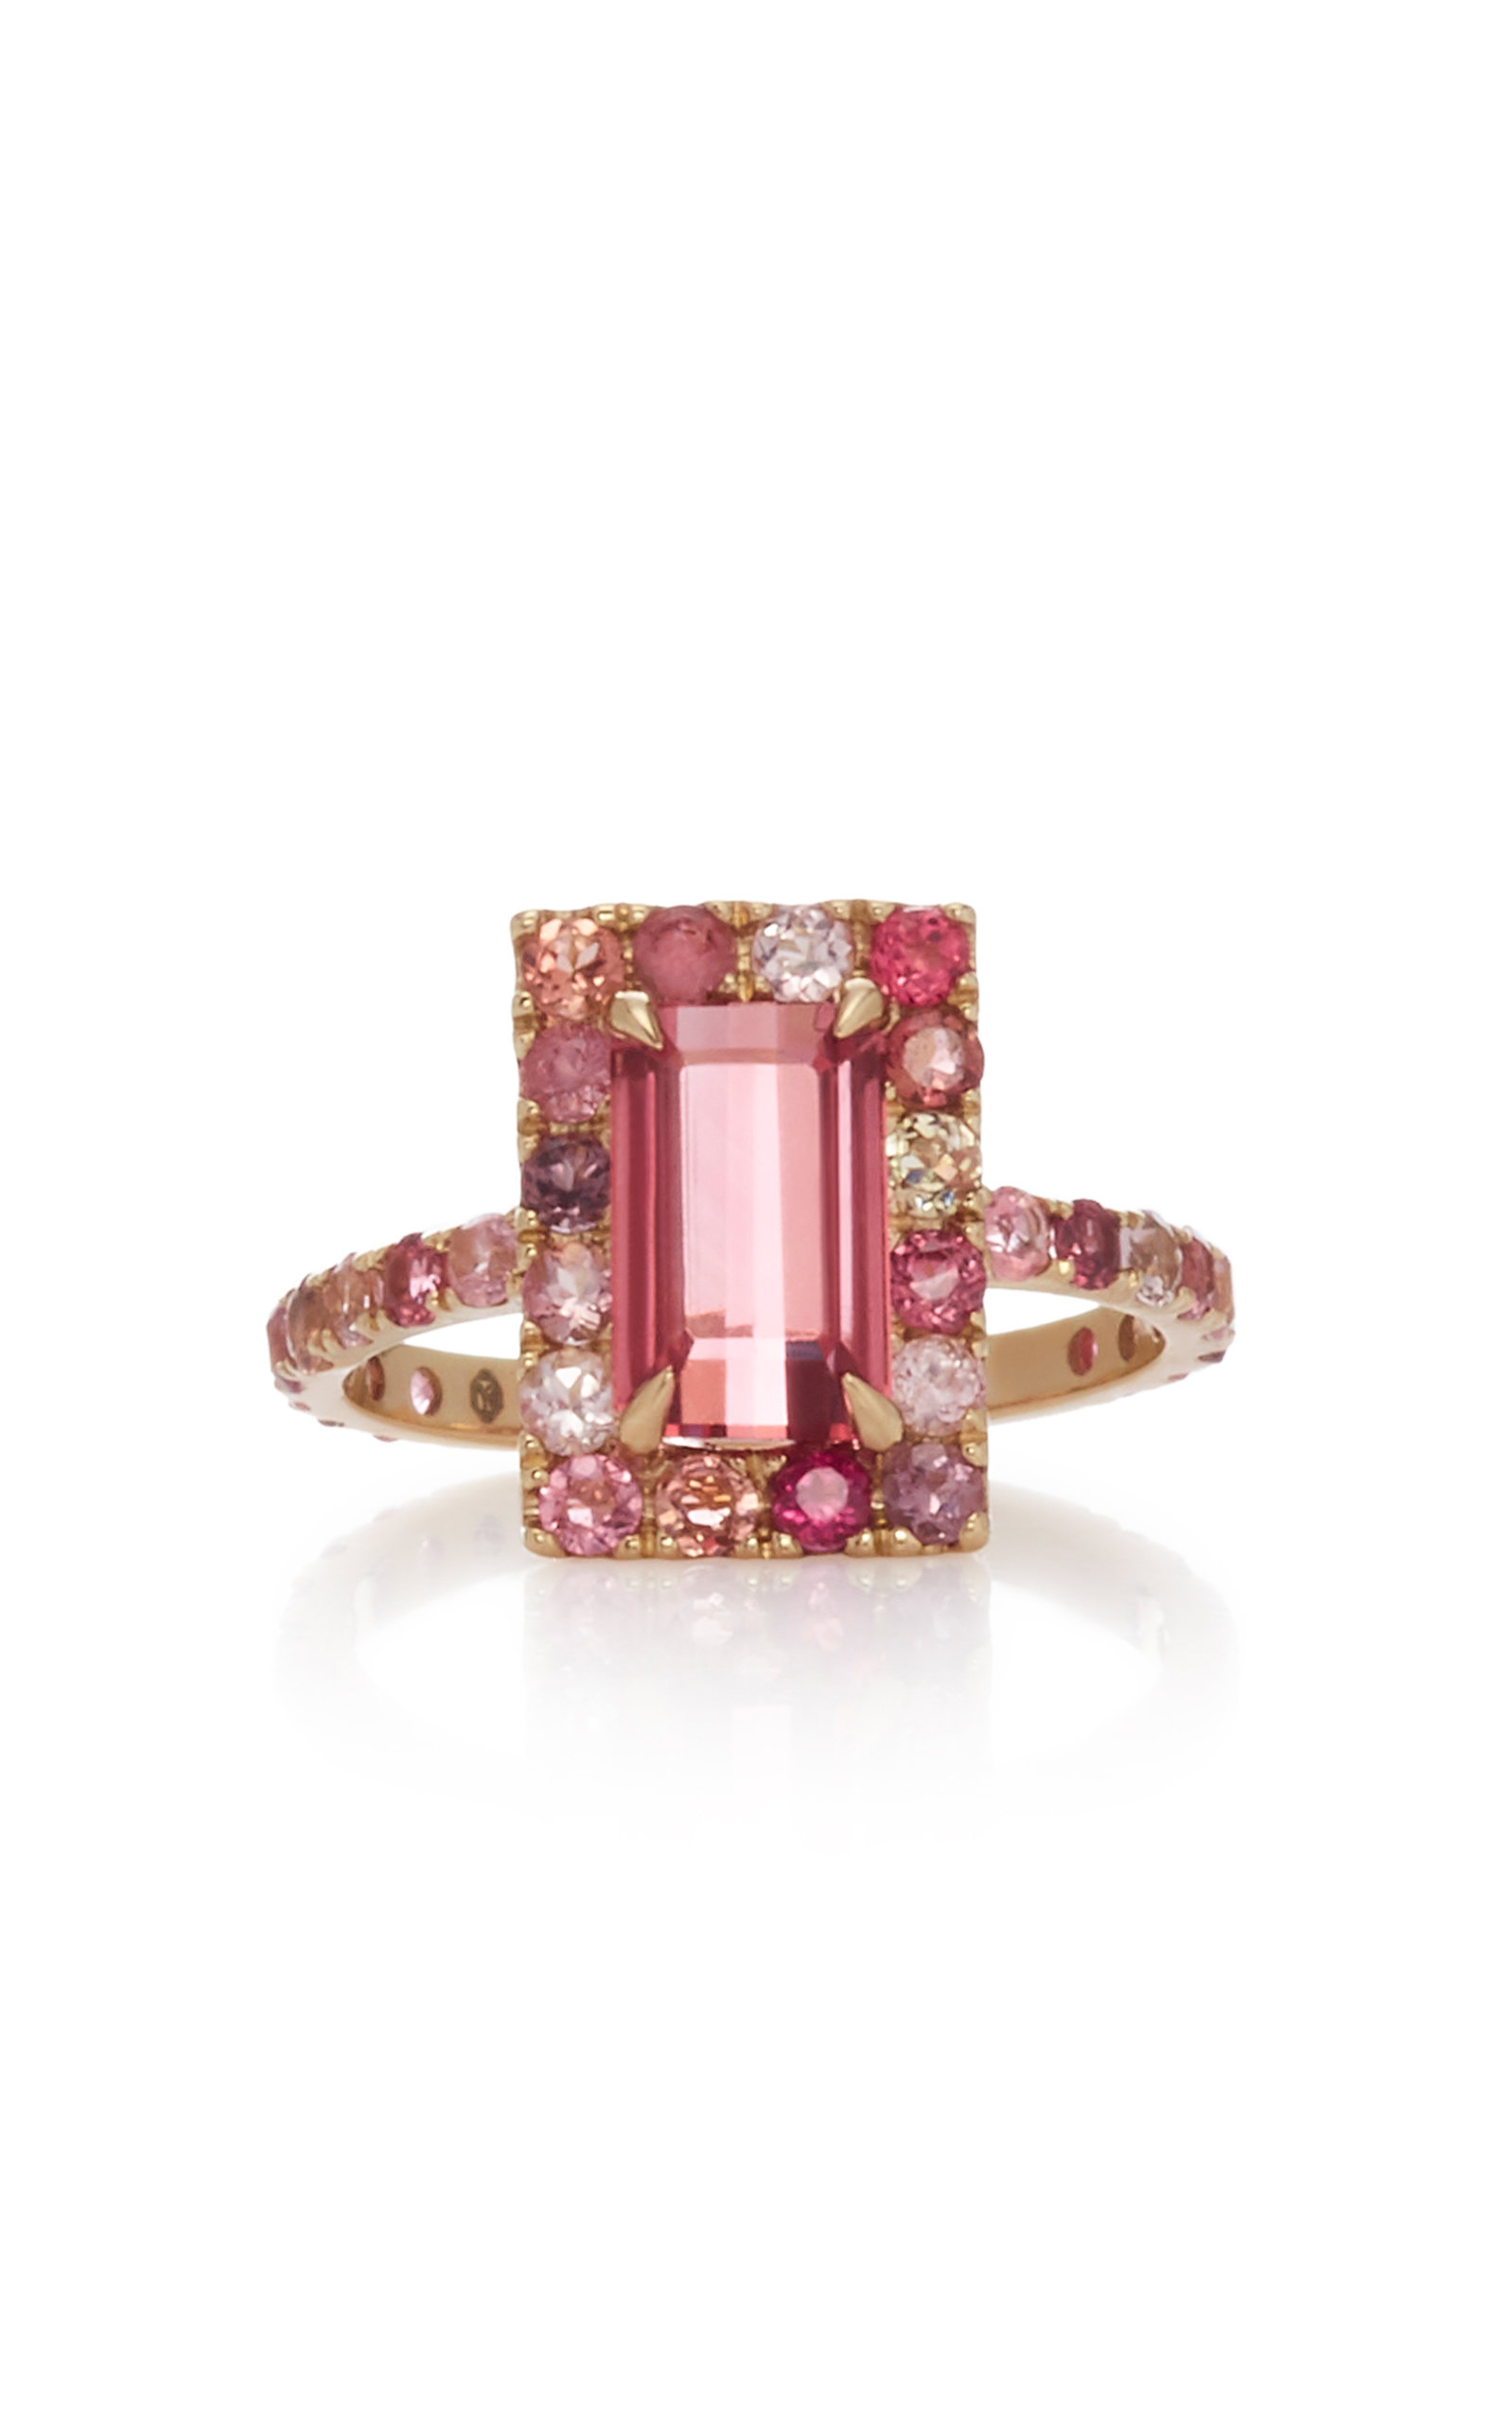 YI COLLECTION 18K Gold Tourmaline Ring in Pink